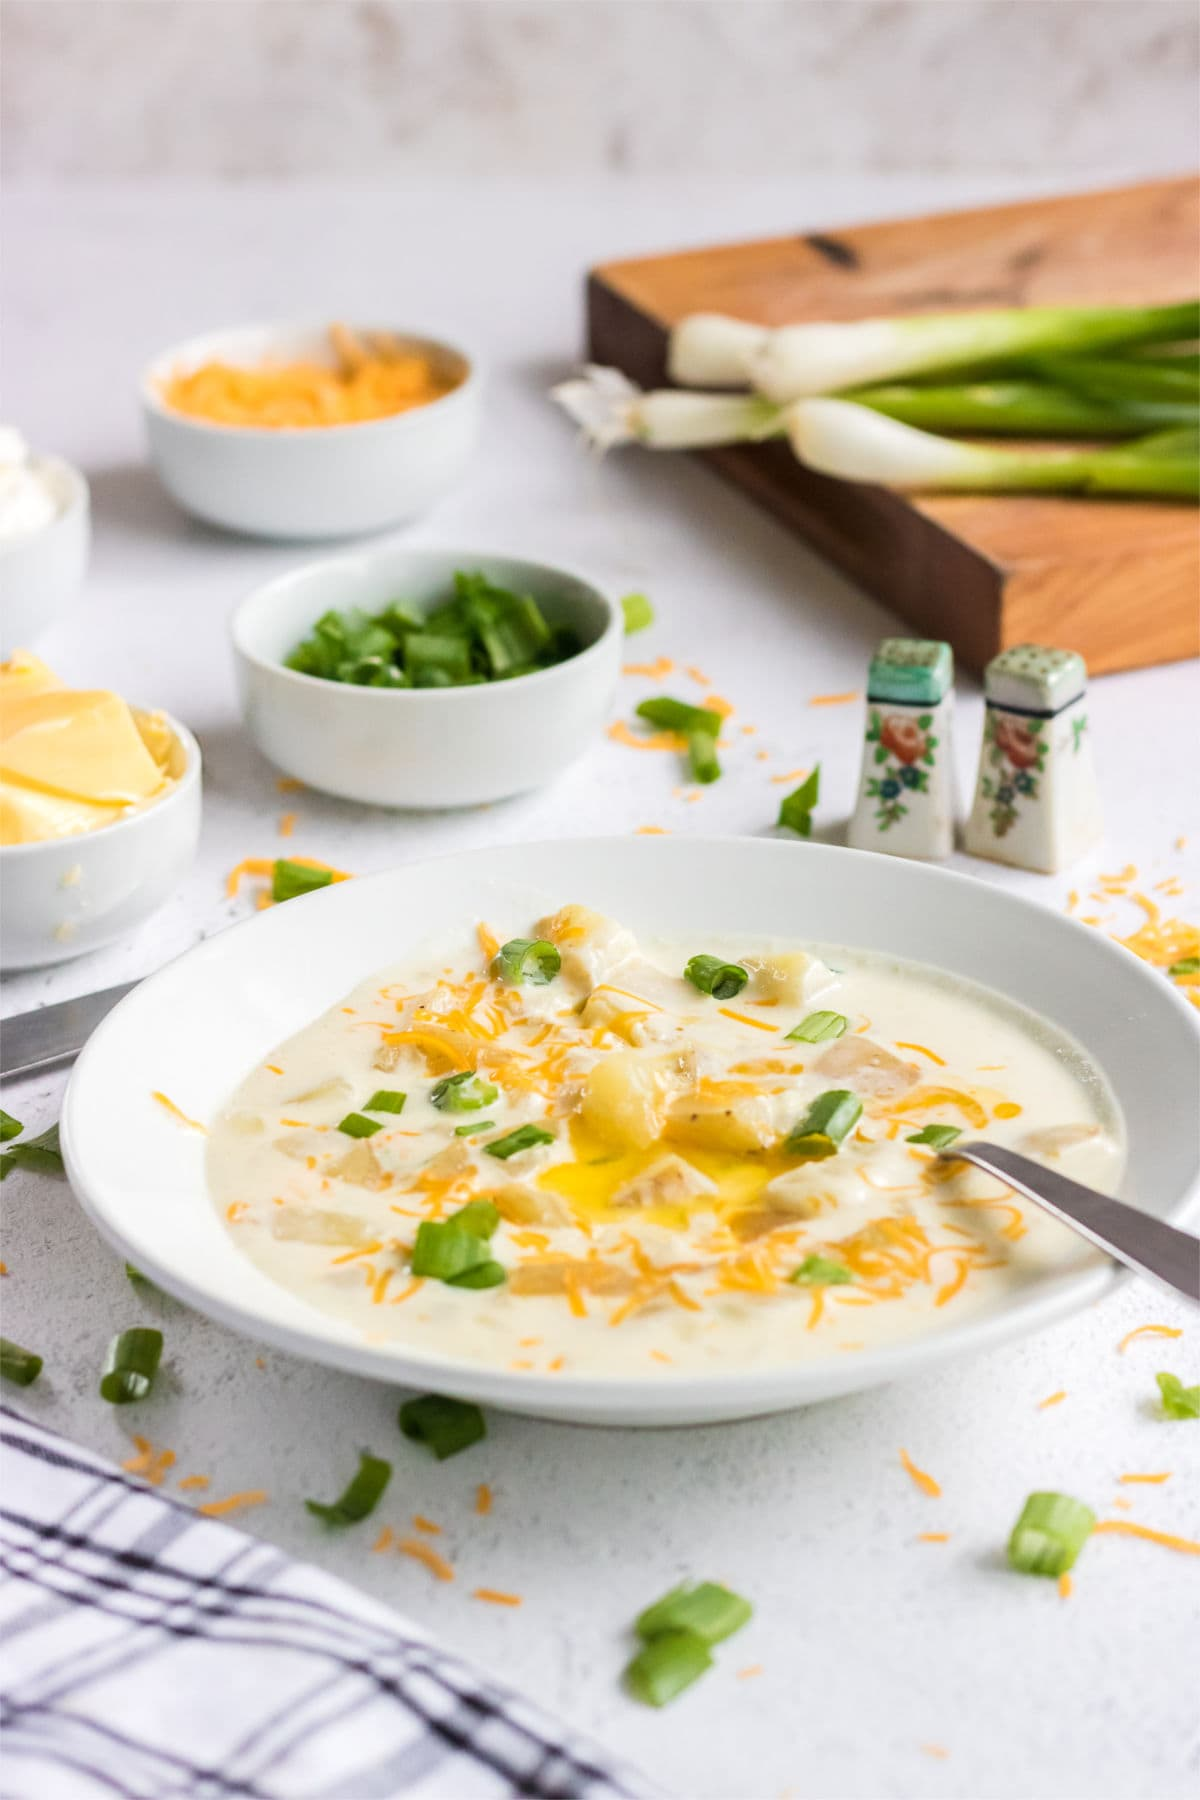 A bowl of easy potato soup garnished with cheese and green onion.